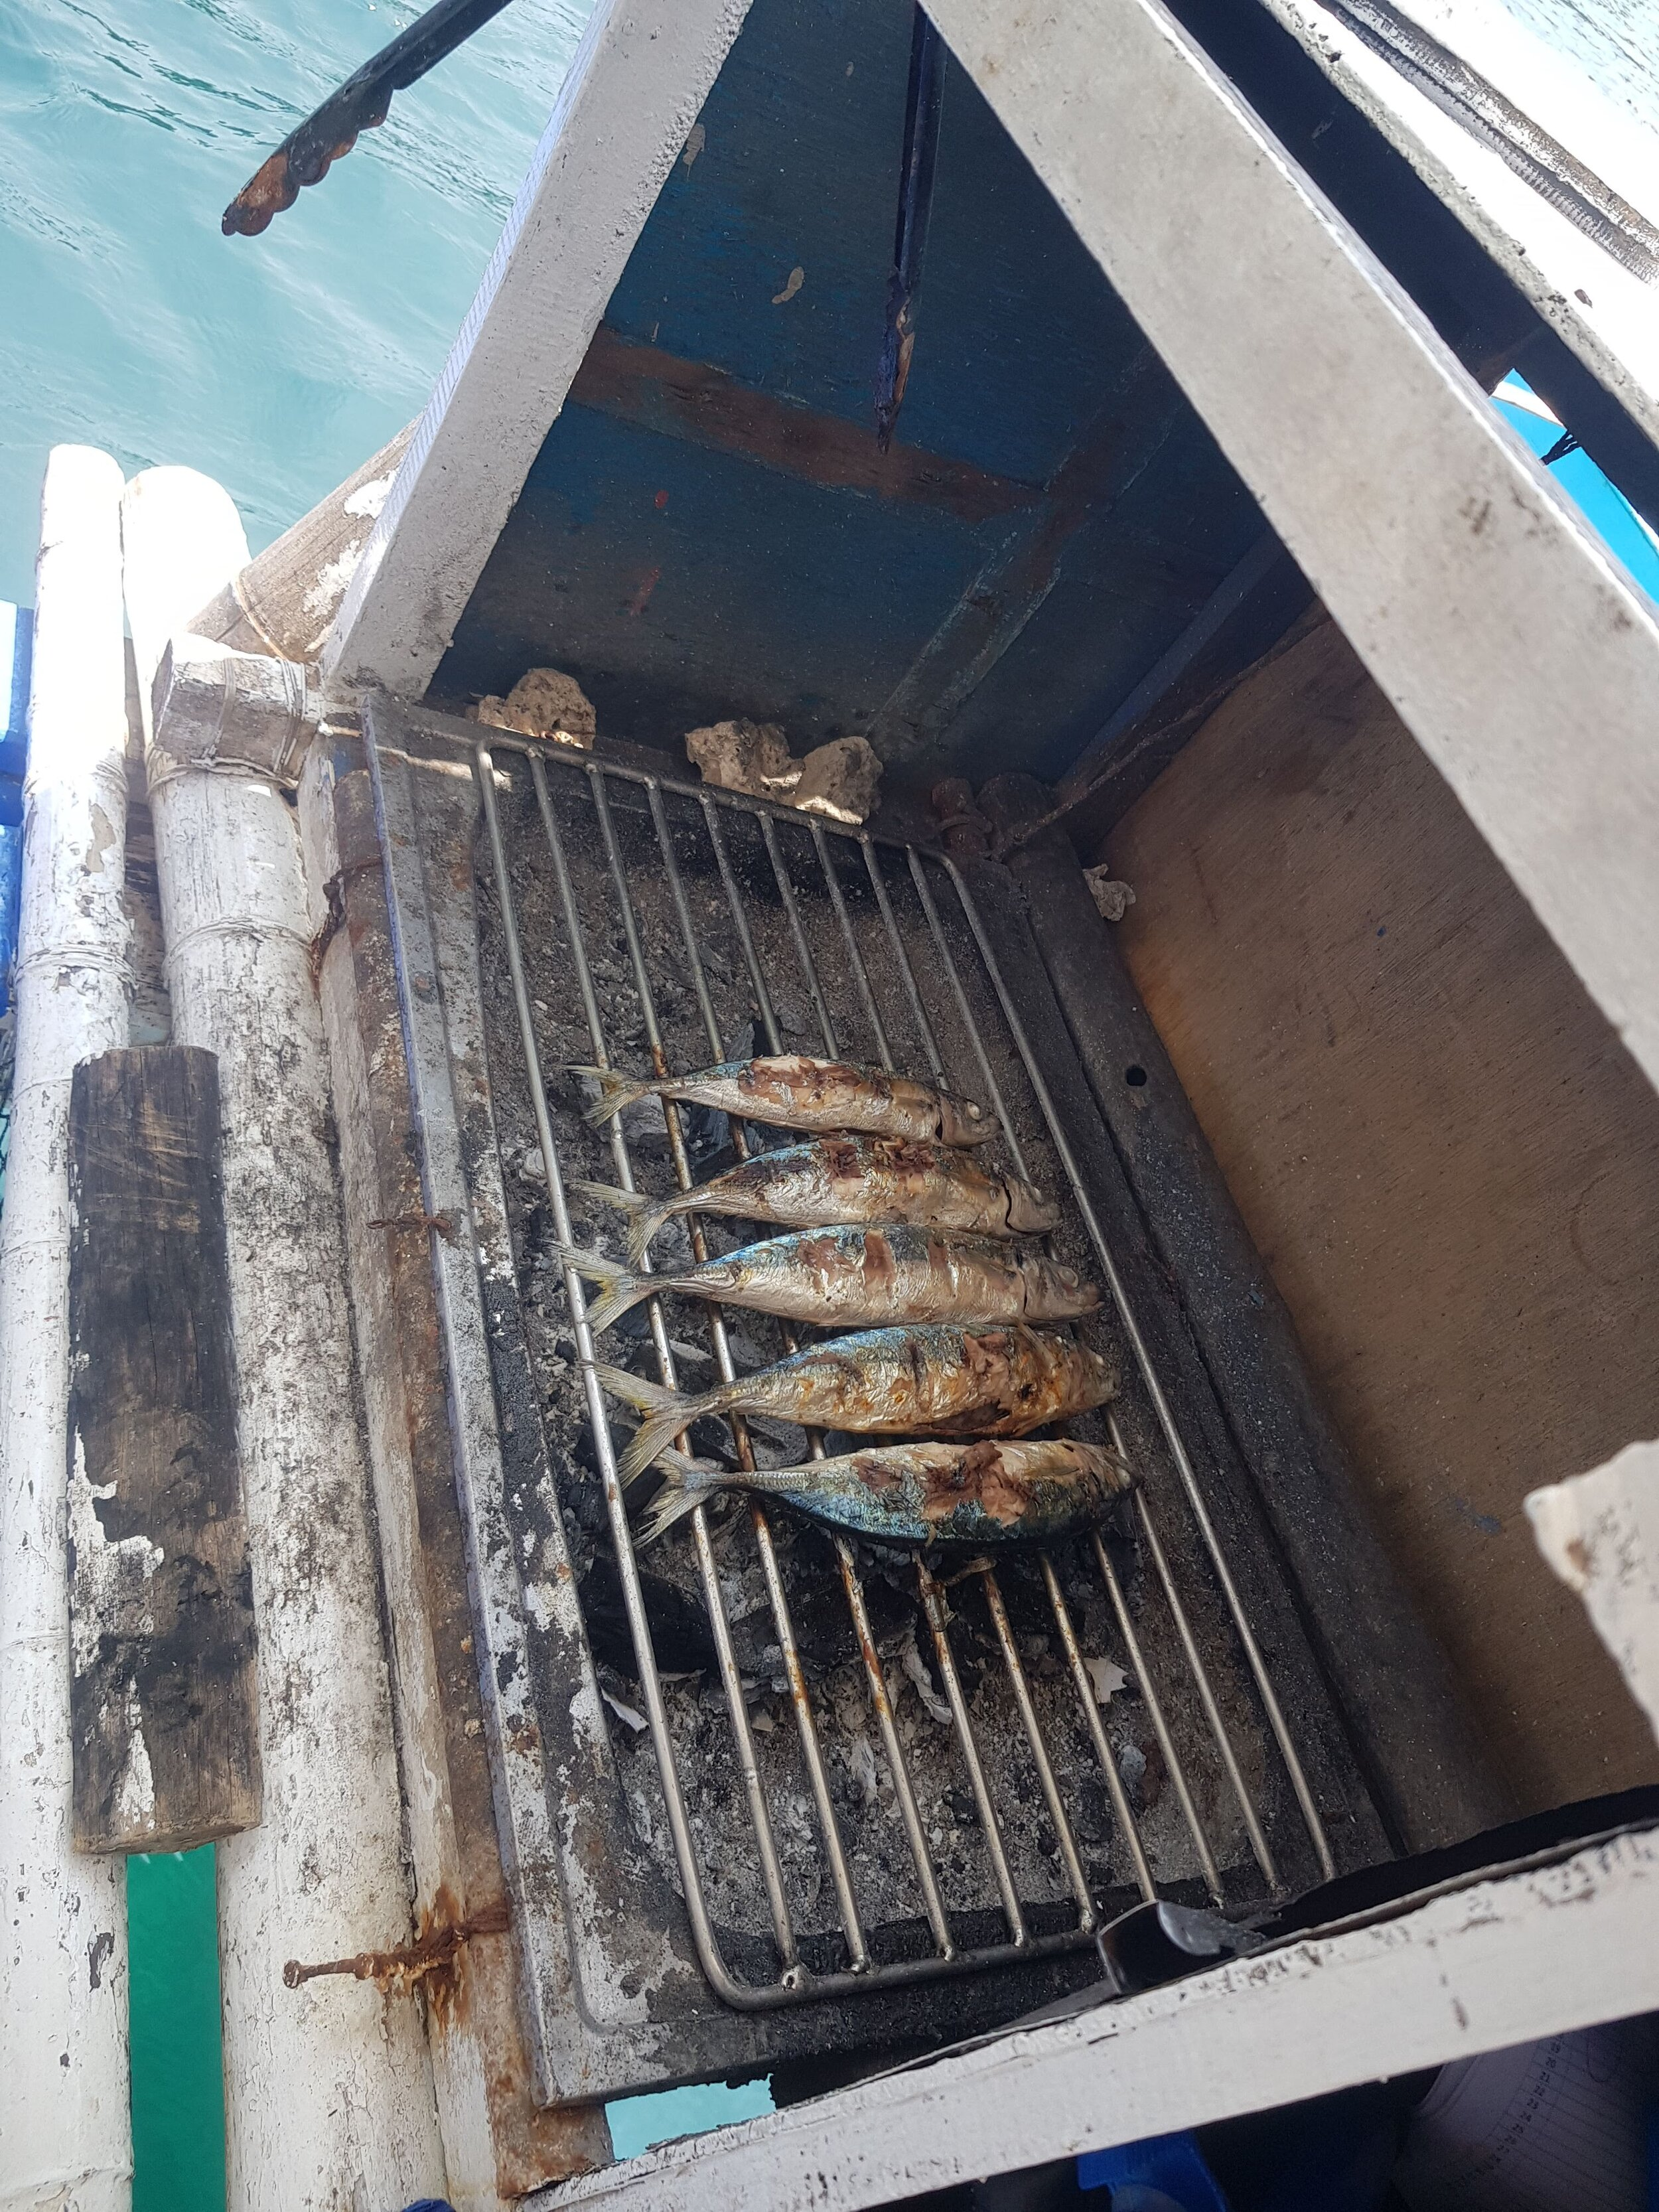 The boat staff grilled our fish for us on their grills on the boat